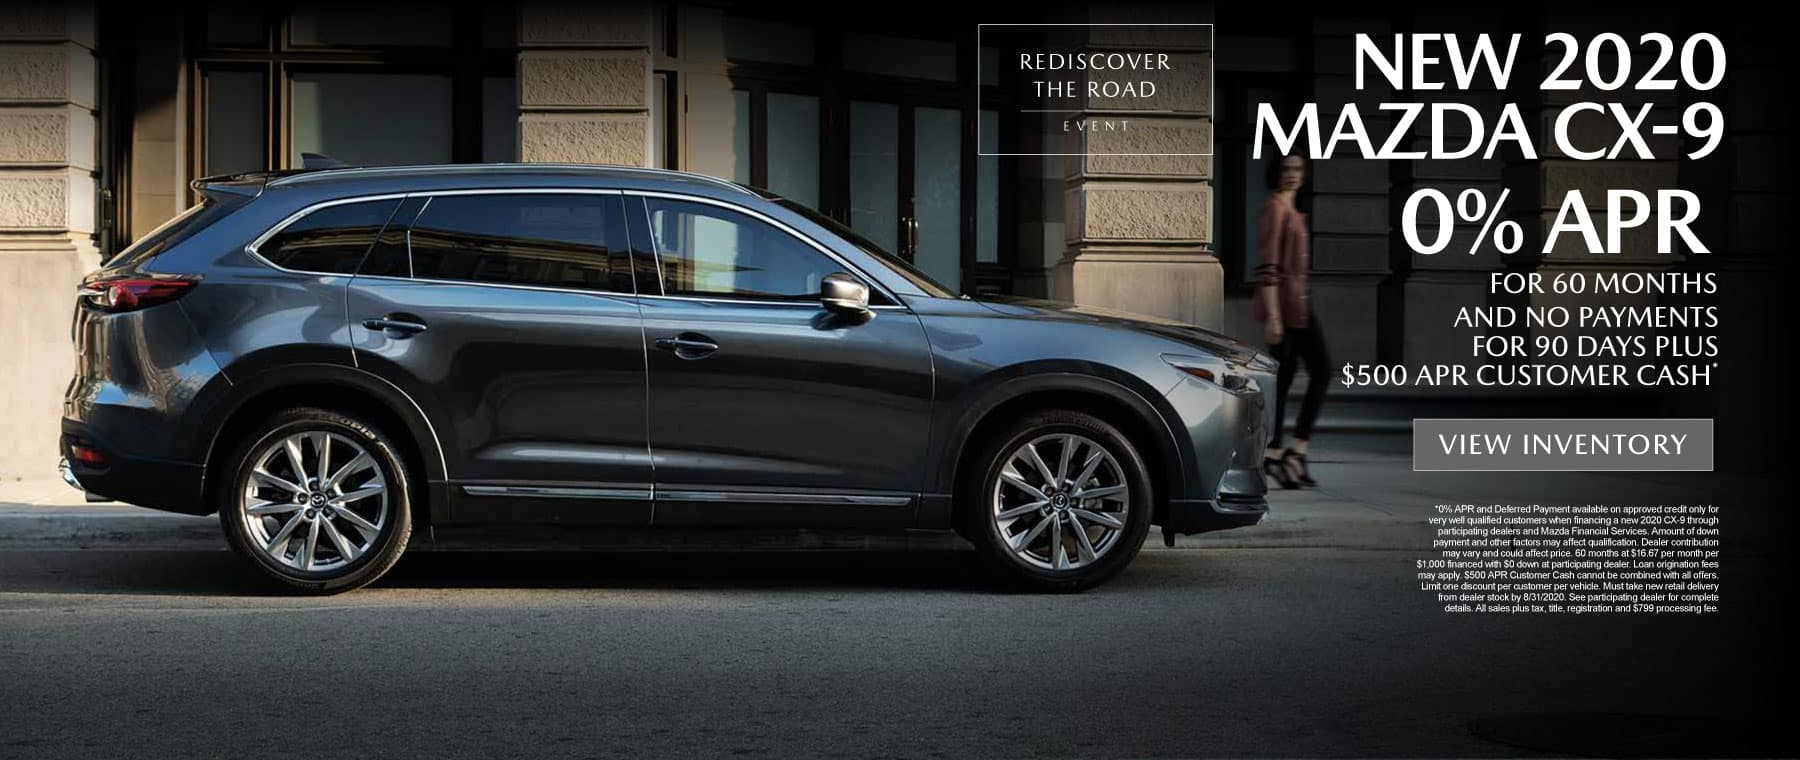 New 2020 Mazda CX-9 - 0% APR for 60 months* - Click to View Inventory